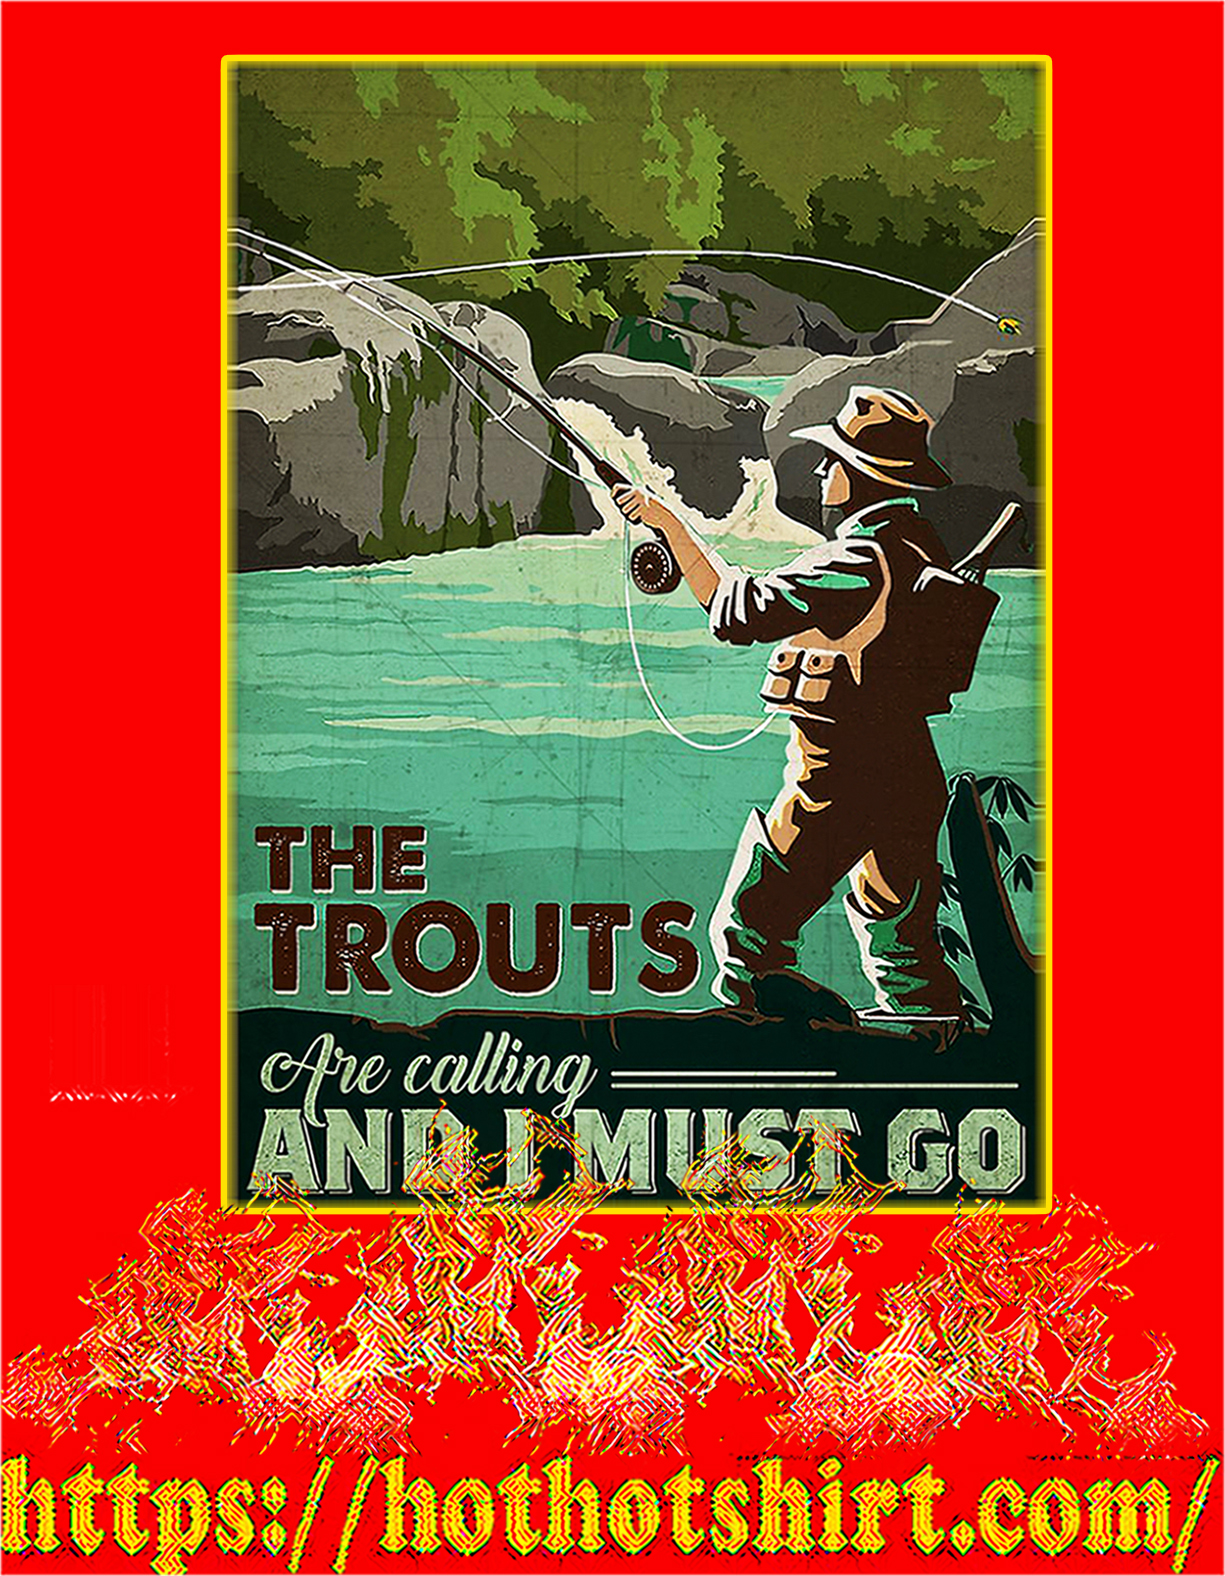 The trouts are calling and I must go poster- A4